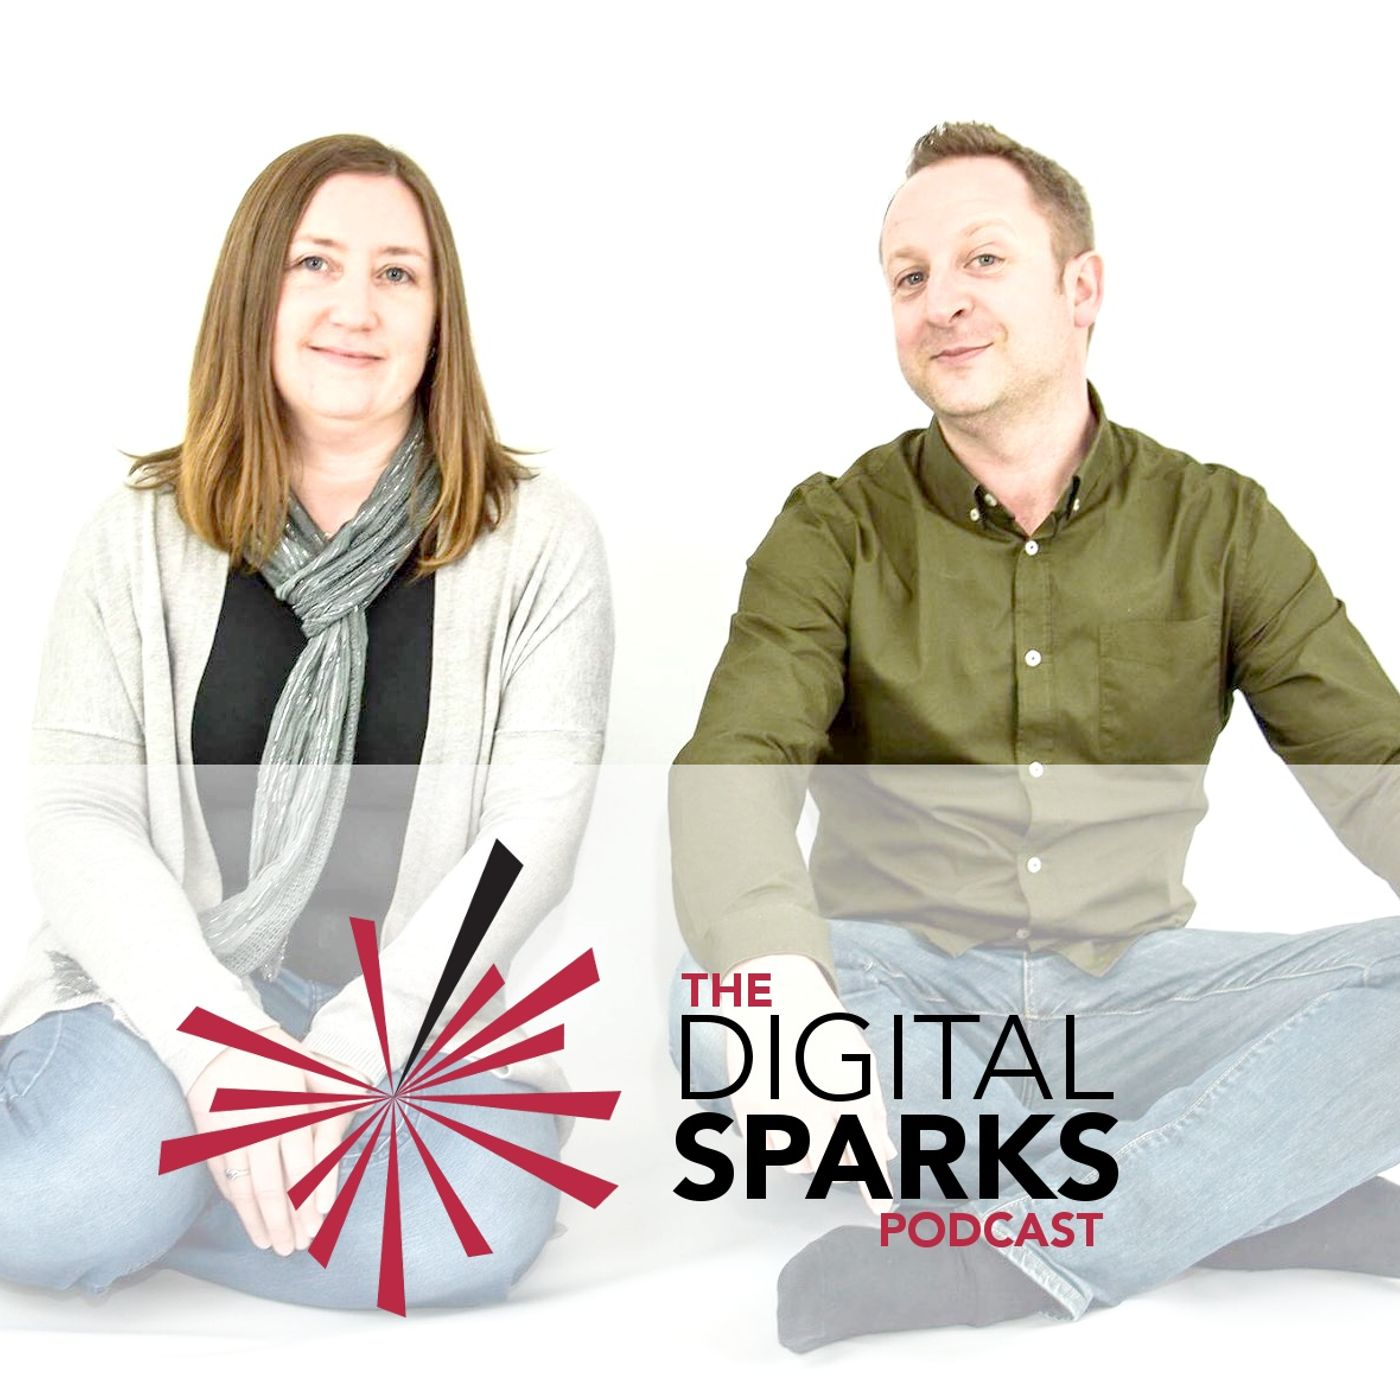 The Digital Sparks Podcast